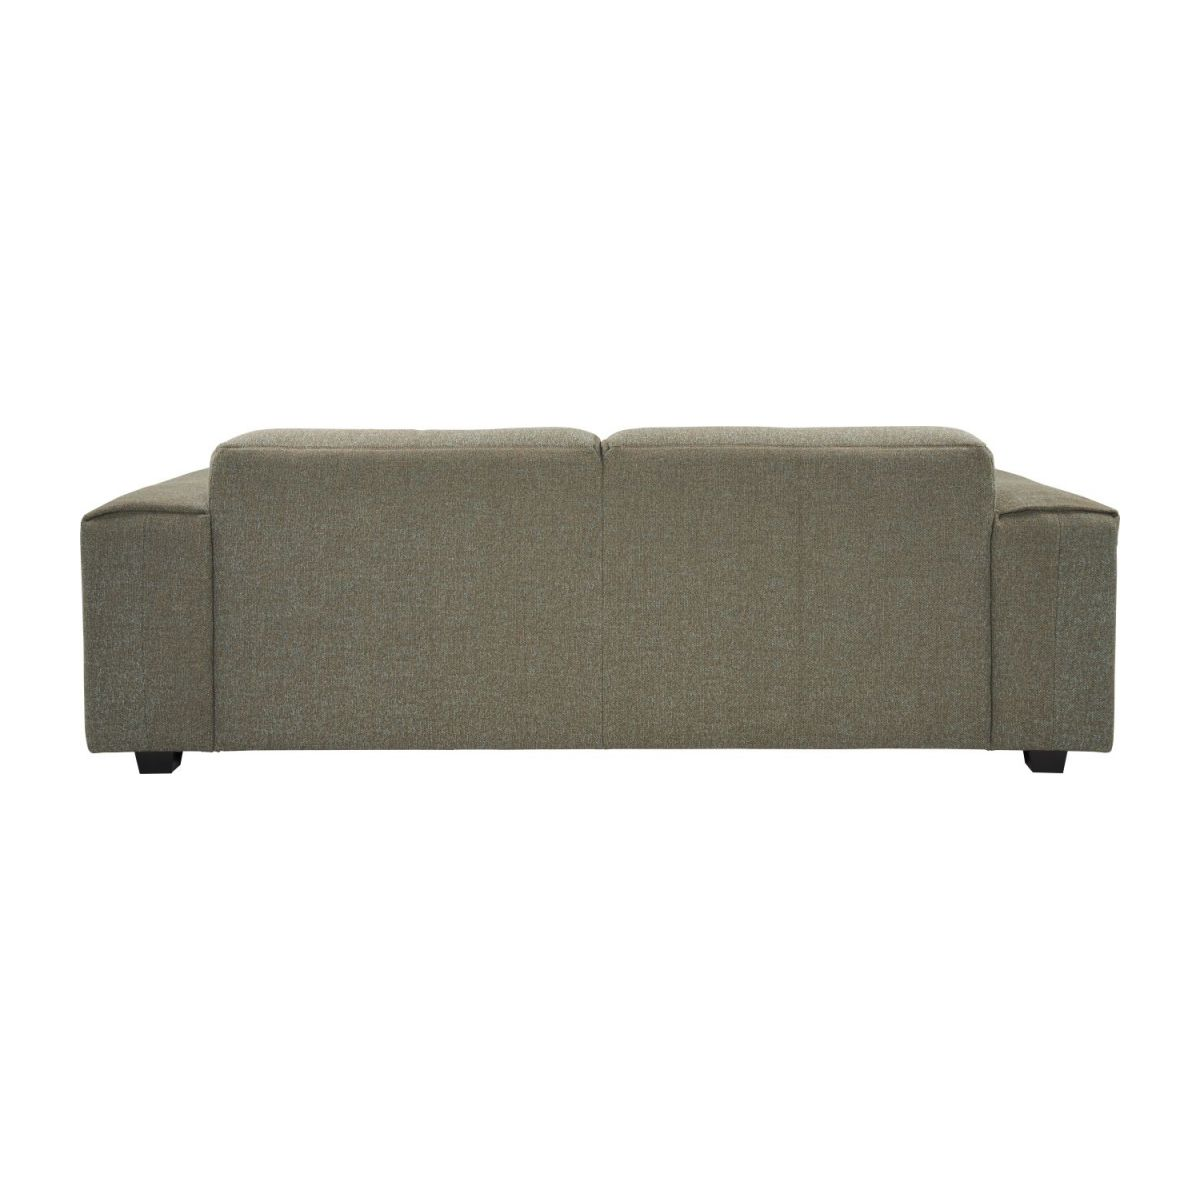 3 seater sofa in Lecce fabric, slade grey n°3